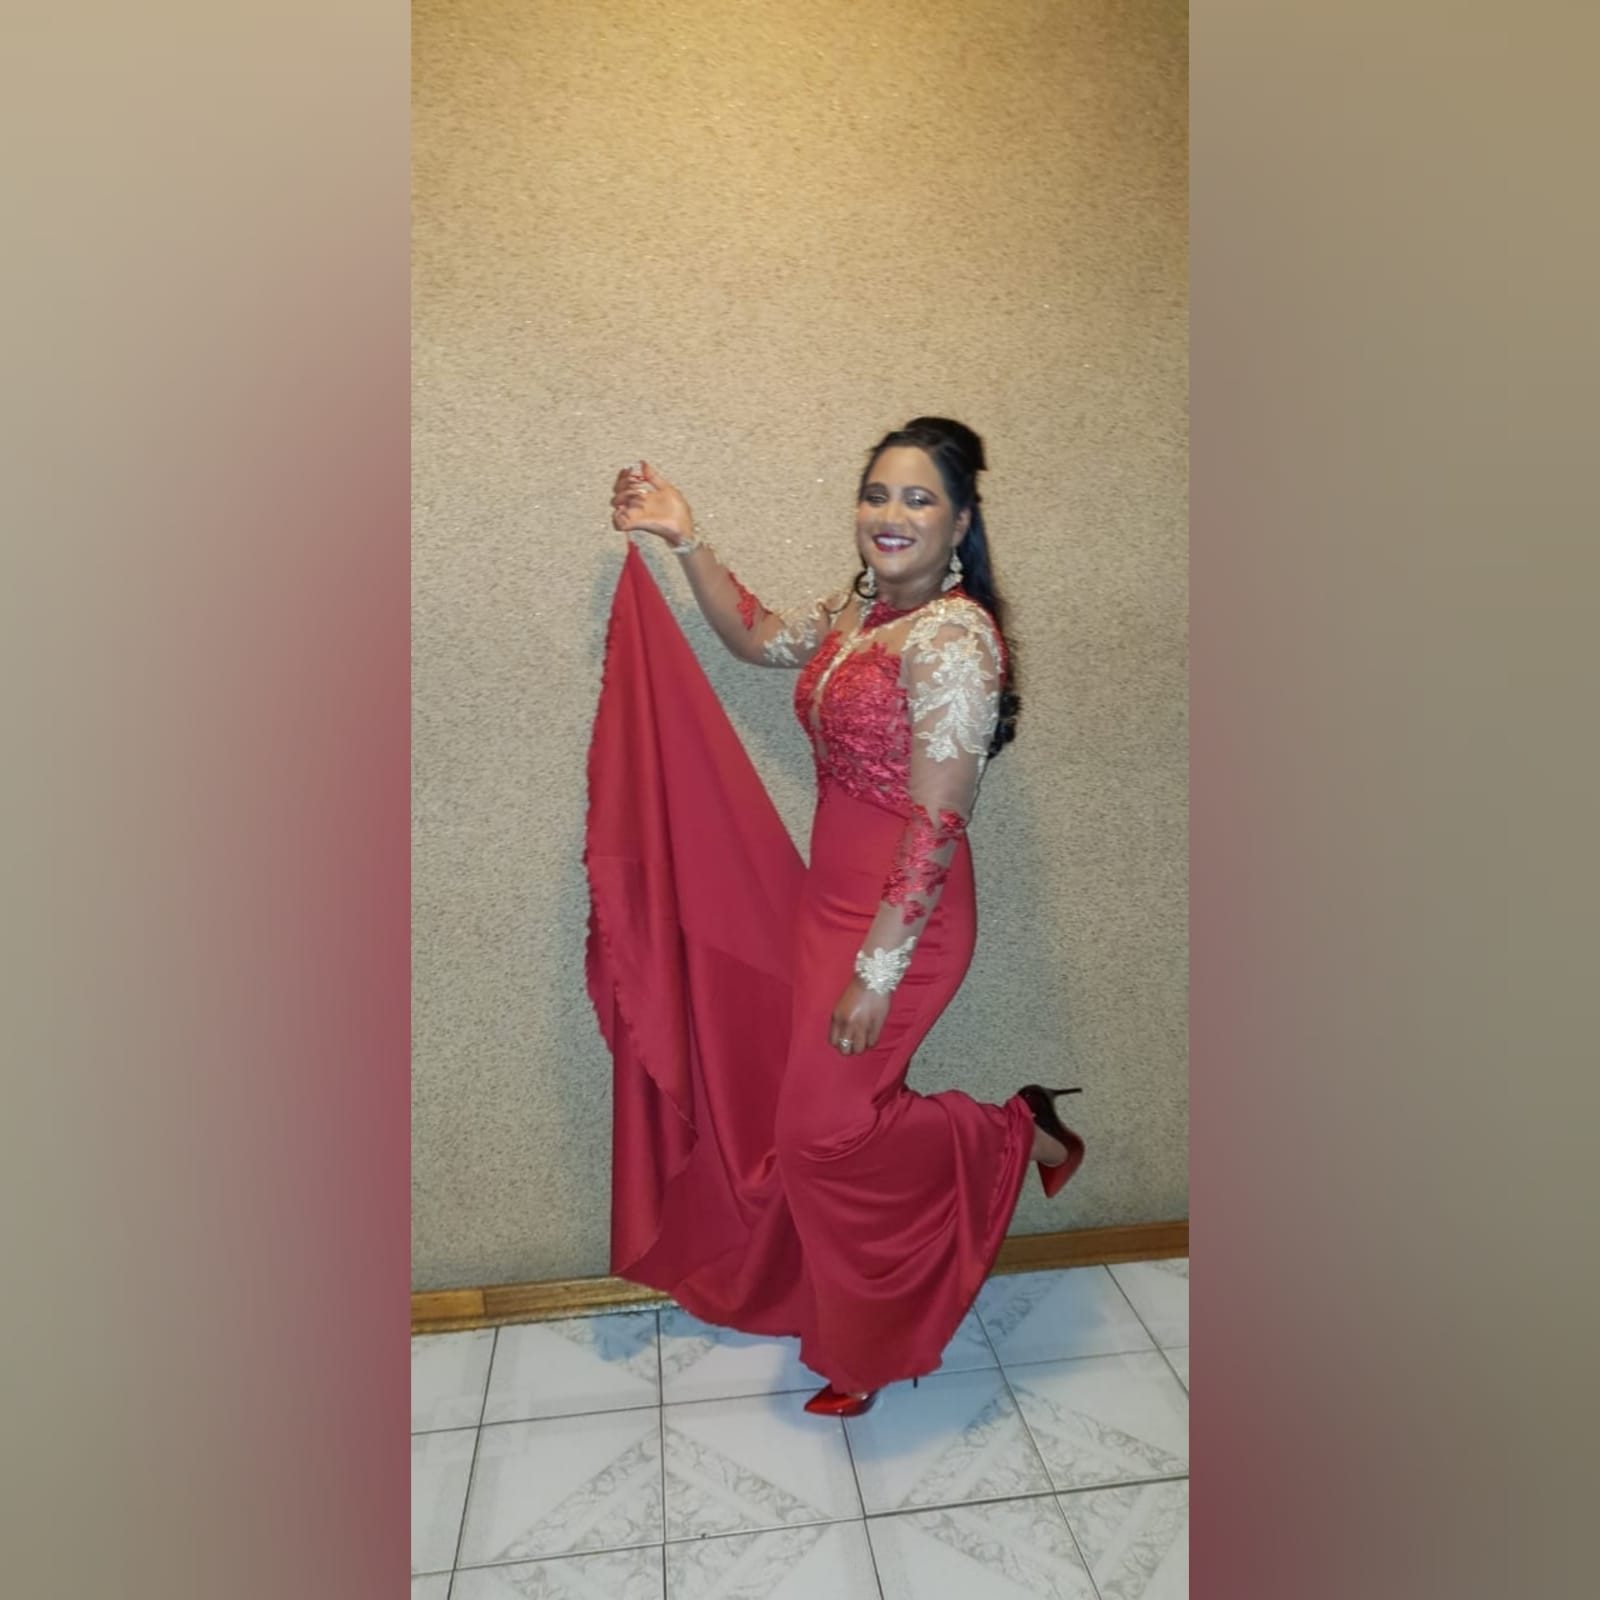 Red and gold lace soft mermaid matric dance dress 6 red and gold lace soft mermaid matric dance dress, illusion lace bodice and sleeves with a diamond shaped open back and a train.